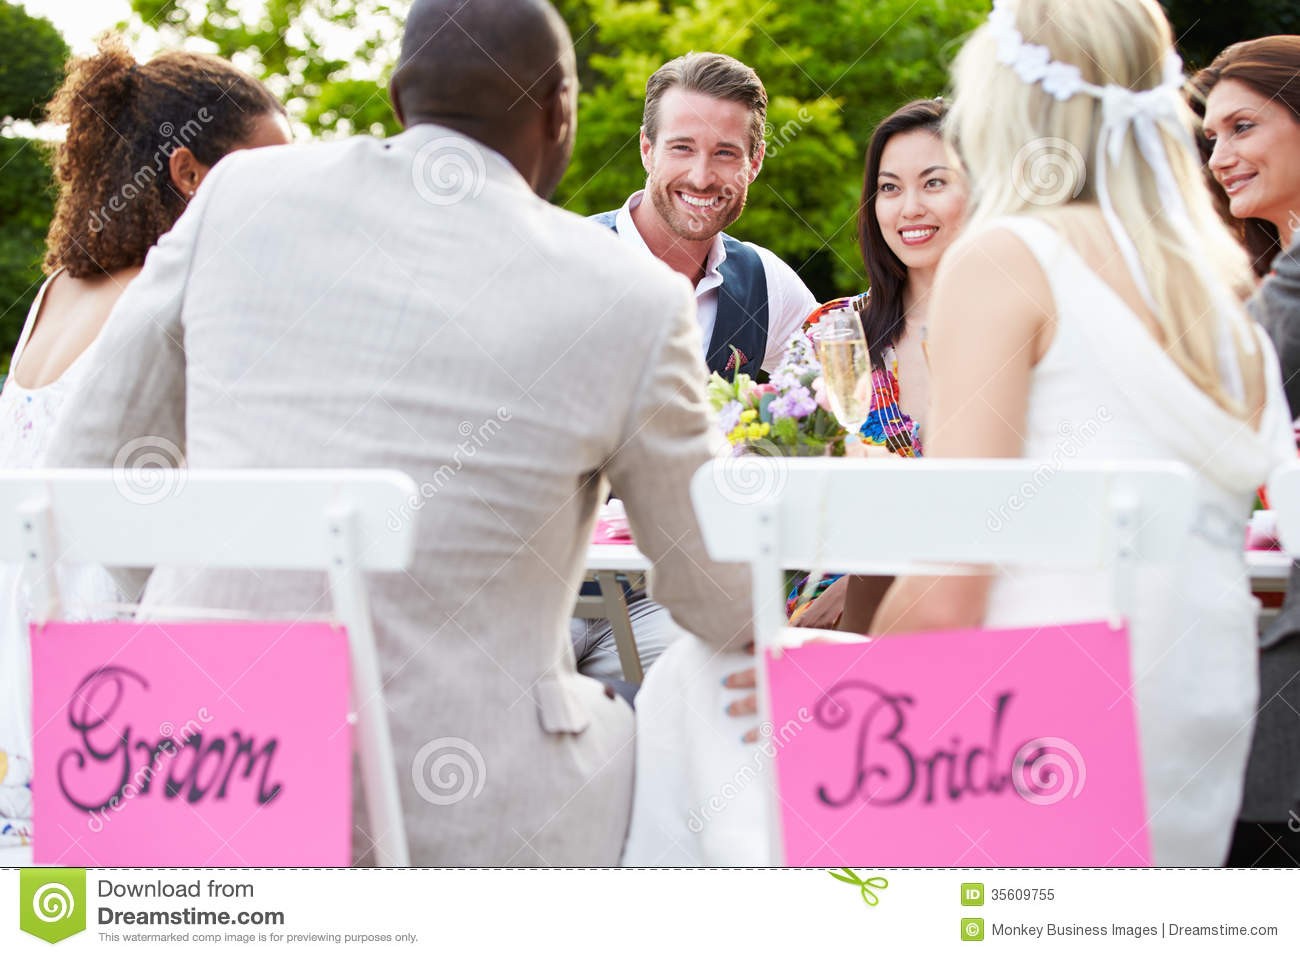 Friends Proposing Champagne Toast At Wedding